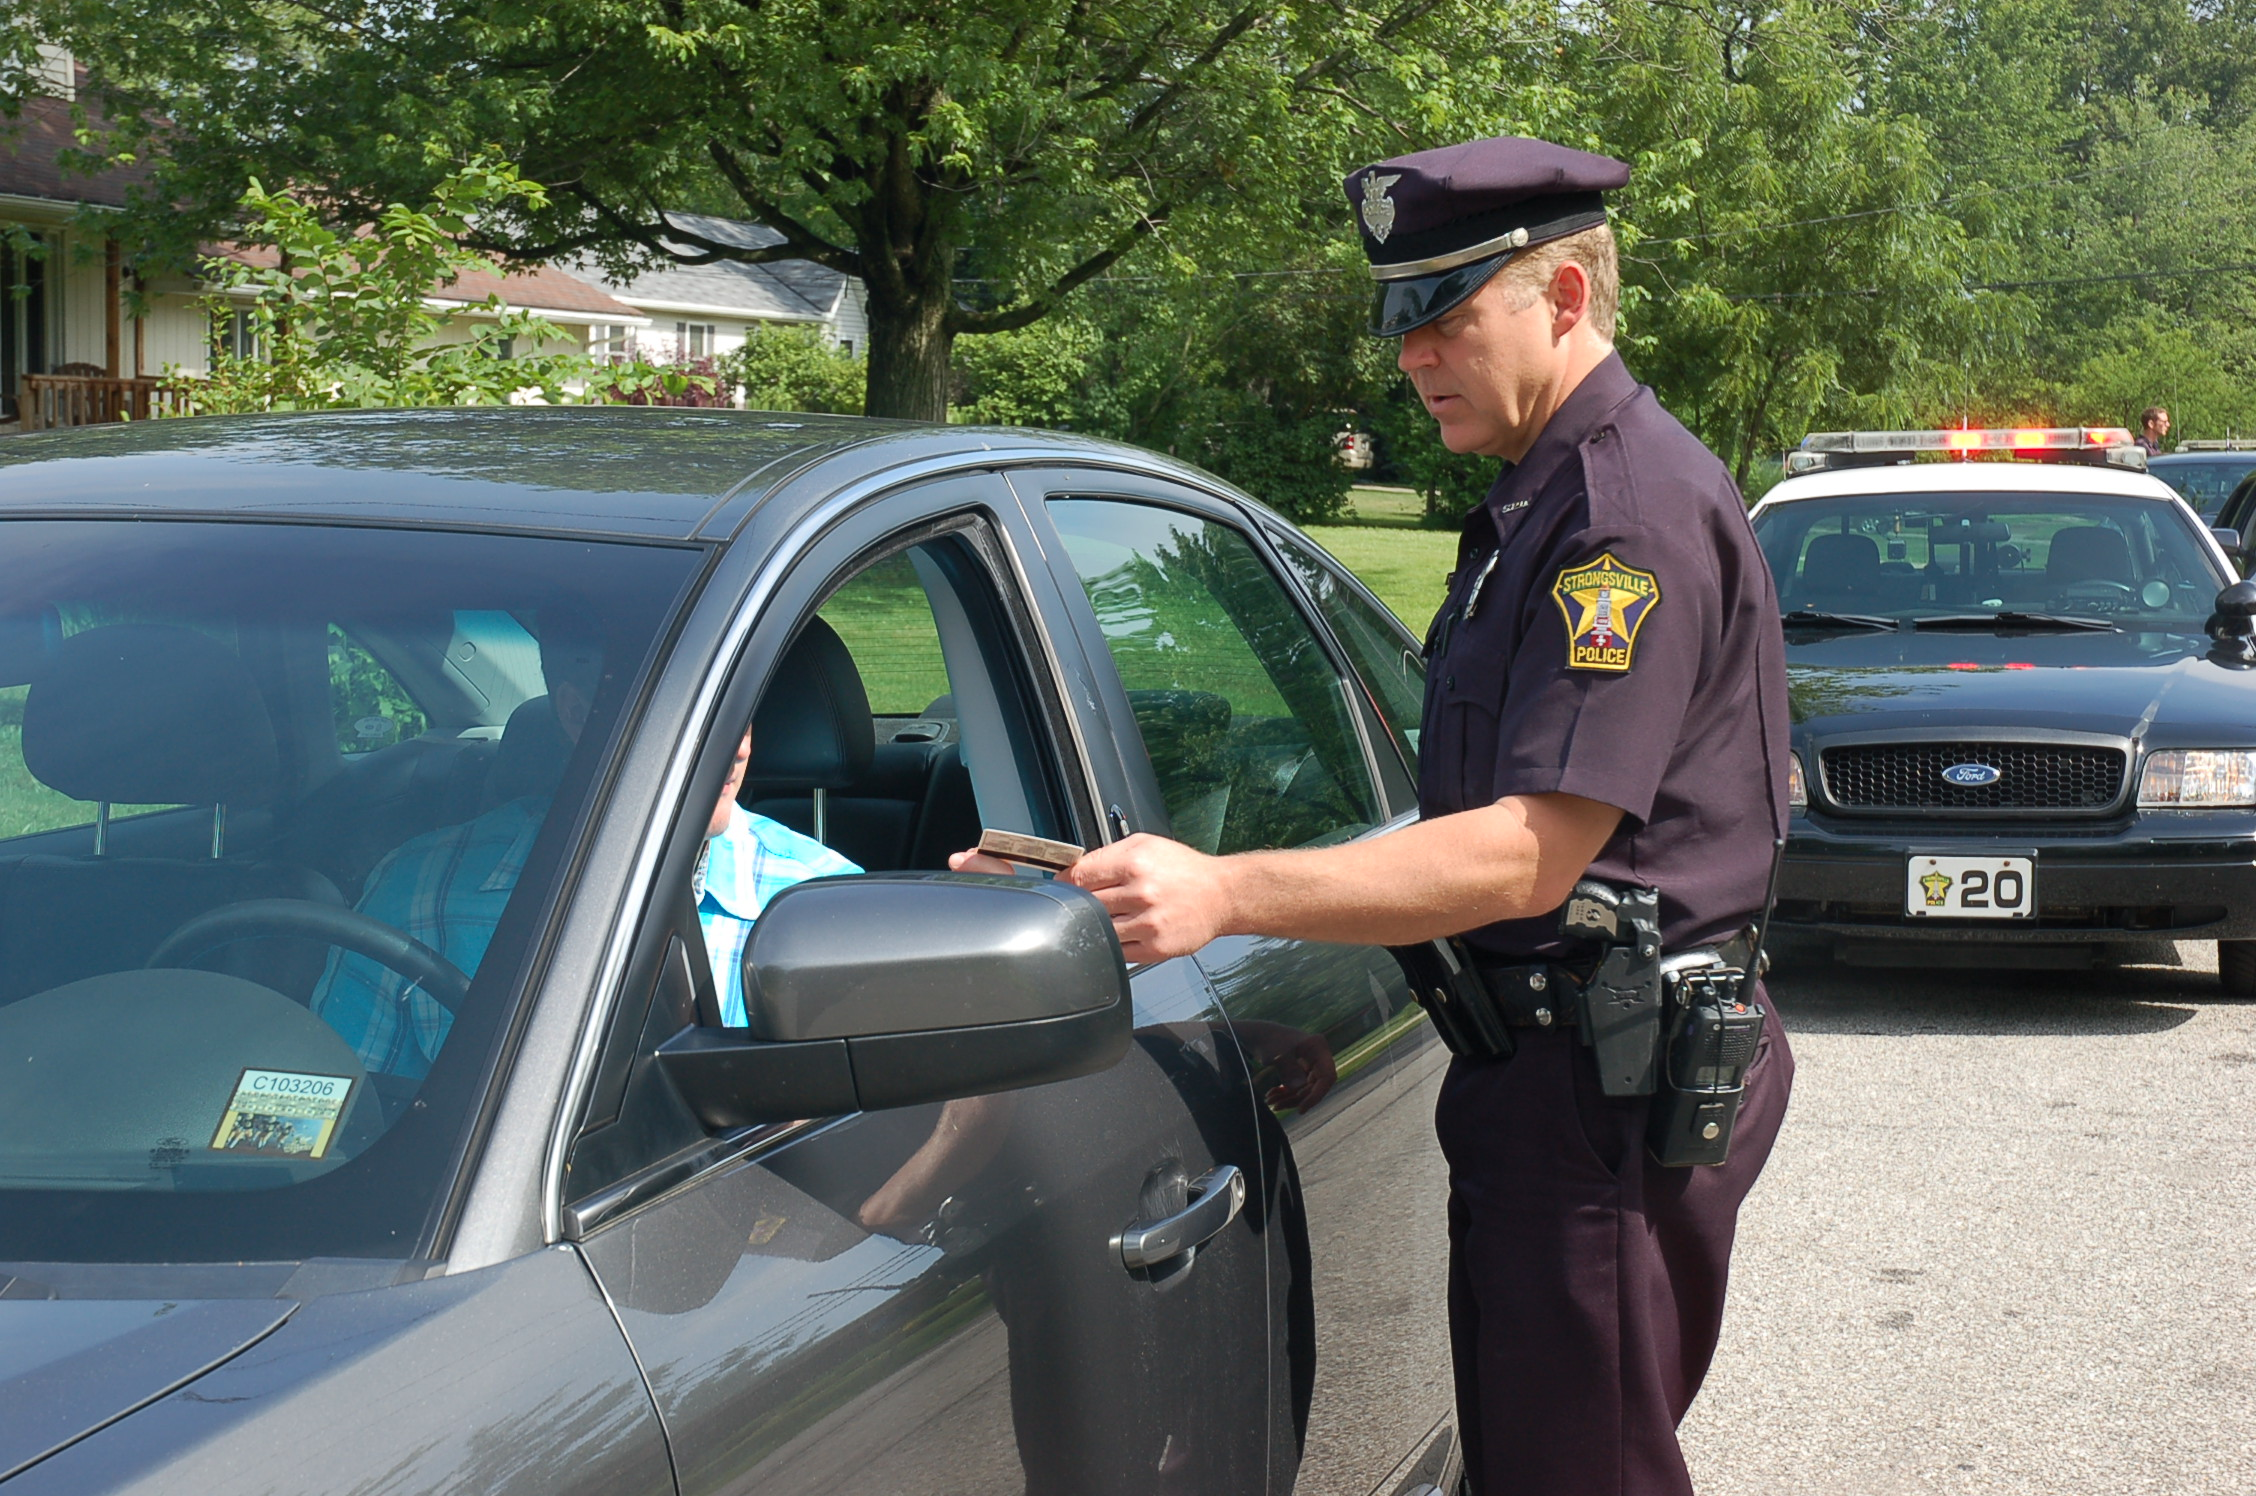 Lawsuit: Cop Preaches Jesus During Traffic Stop, Hands Woman Church Pamphlet